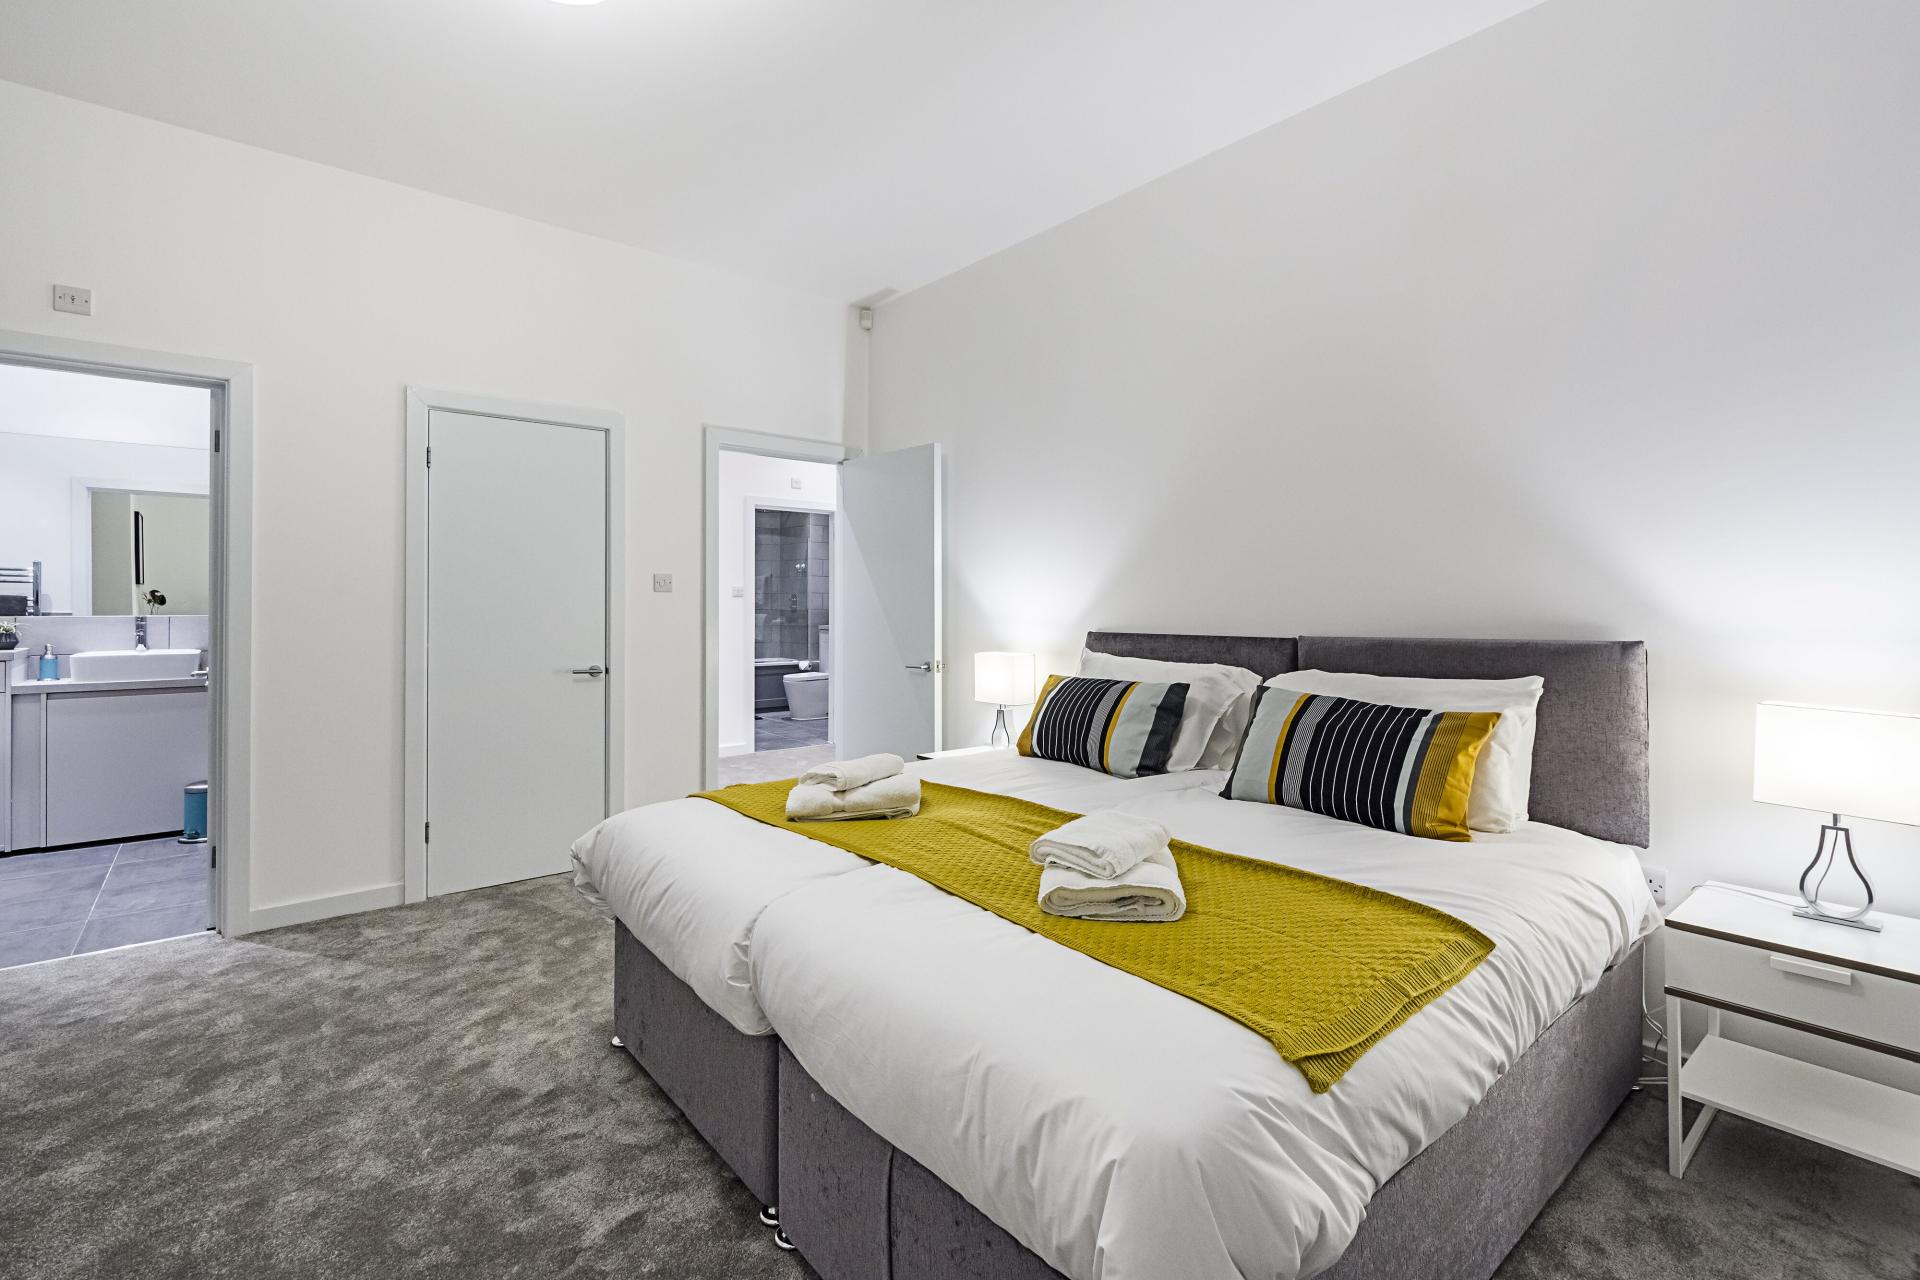 Zip and link beds at Vibrant Vauxhall Apartments